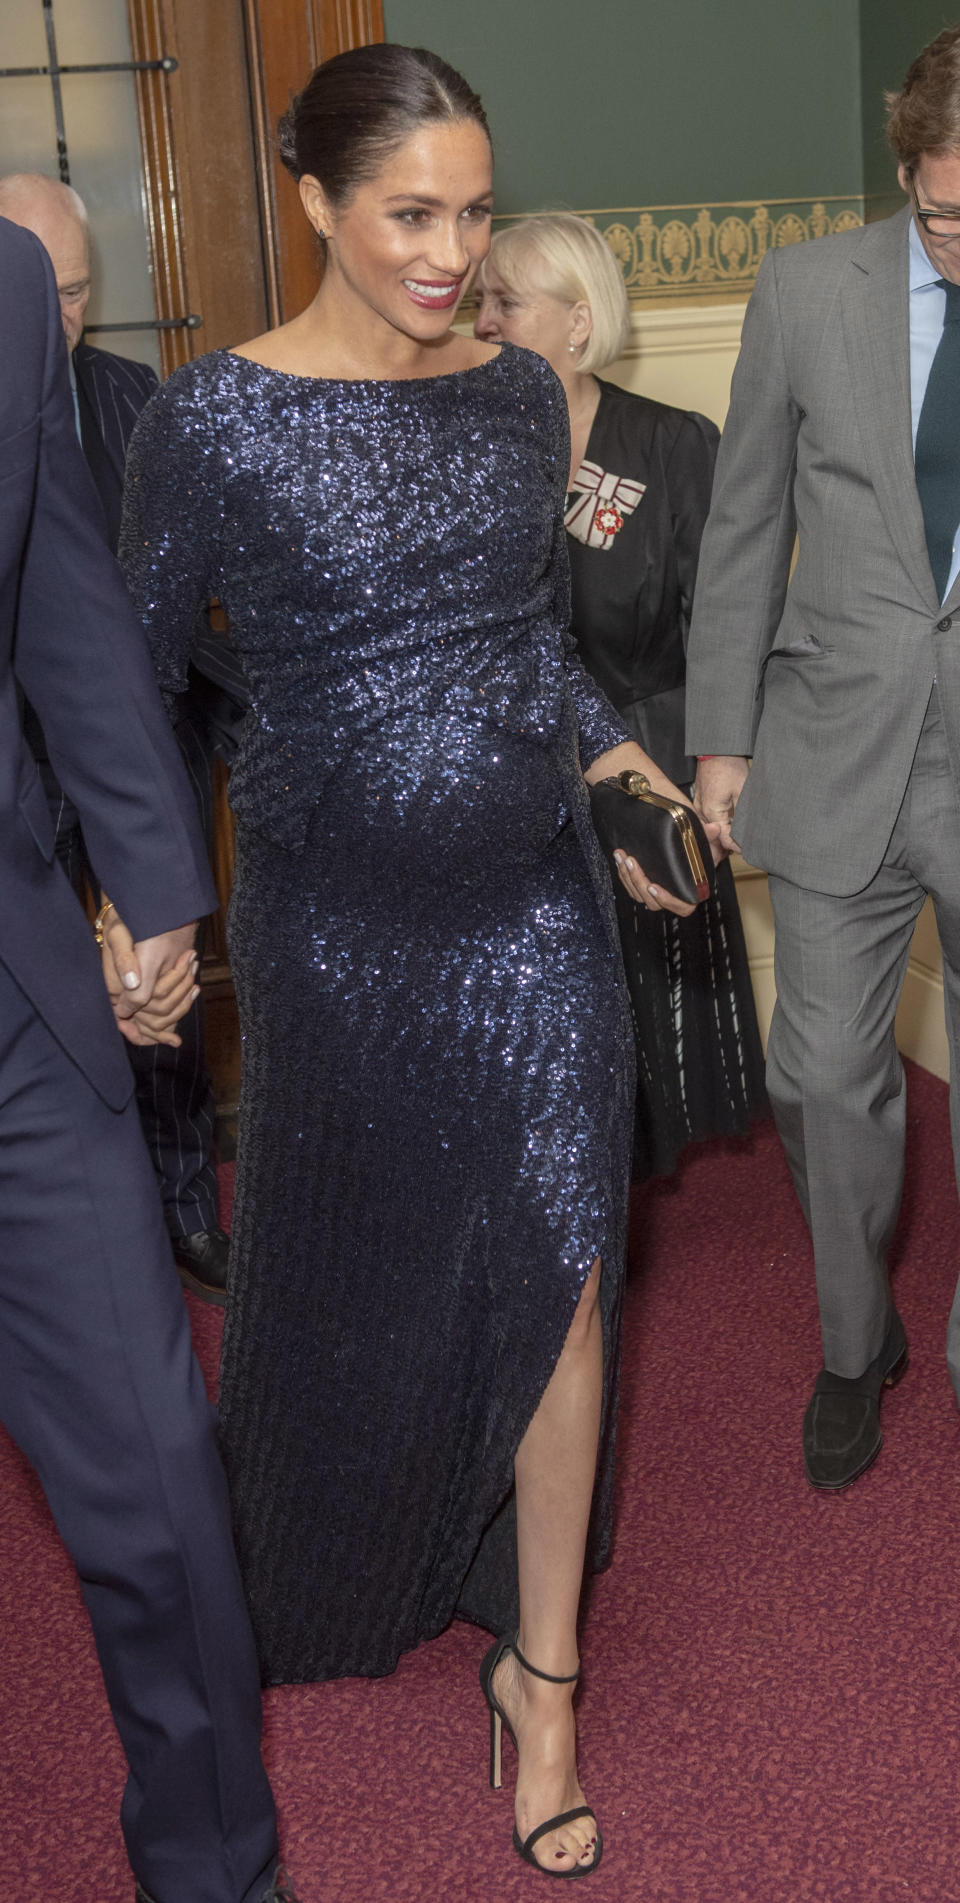 The Duchess of Sussex dazzled at the premiere of the Cirque du Soleil's 'Totem' at the Royal Albert Hall on January 16. The mother-to-be dressed her bump in a £3,475 midnight blue Roland Mouret gown finished with Stuart Weitzman's £450 black 'Nudist' sandals. Her go-to Givenchy satin clutch bag and Princess Diana's Heirloom bracelet completed the ensemble. [Photo: Getty]